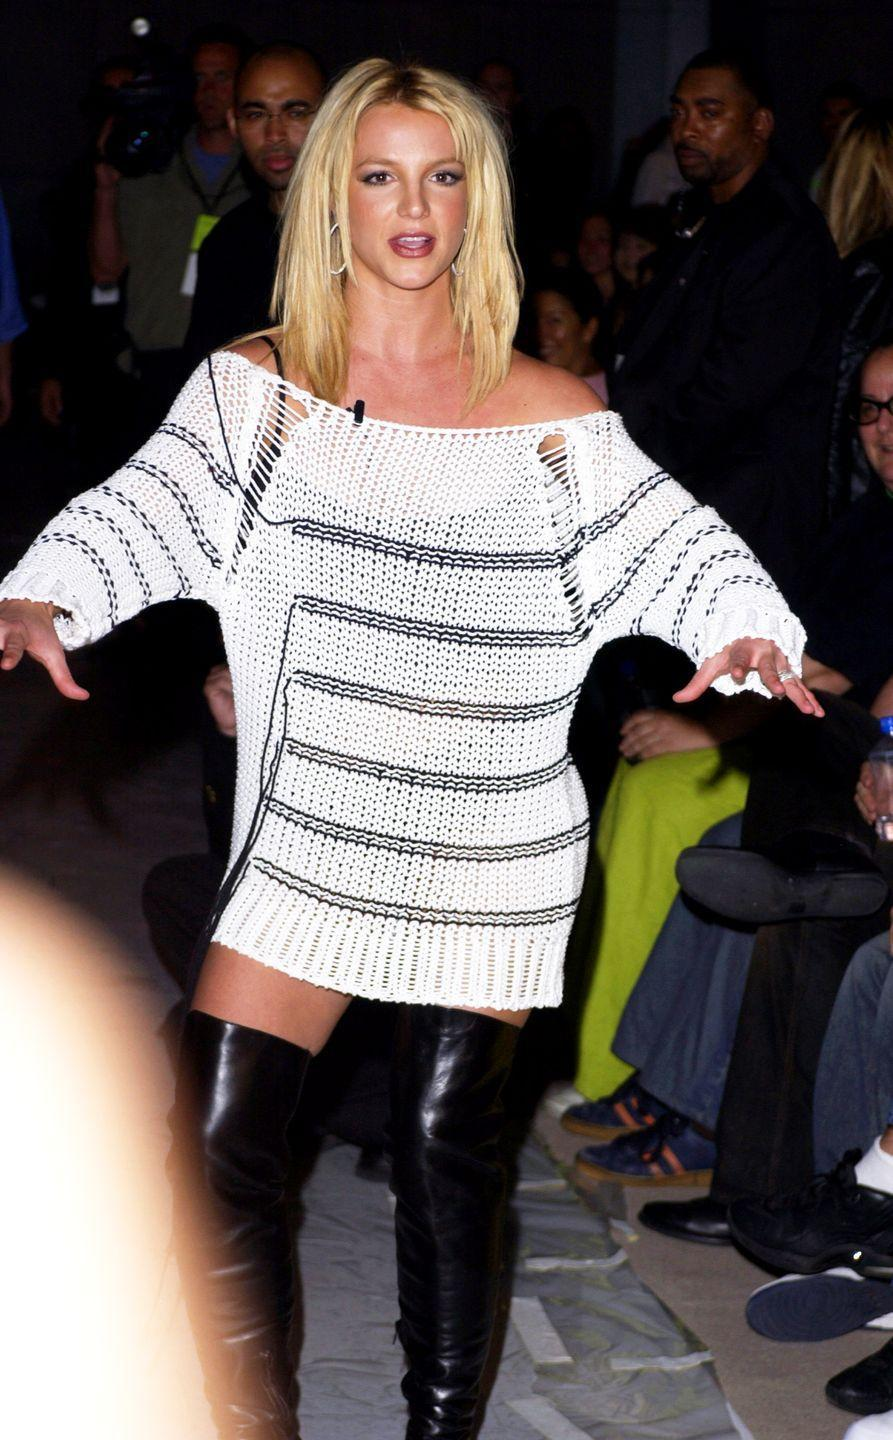 <p>The best part of this sheer outfit is the extra <em>Pretty Woman</em> boots and the fact that Britney wore this to sit front row at a New York Fashion Week show.</p>